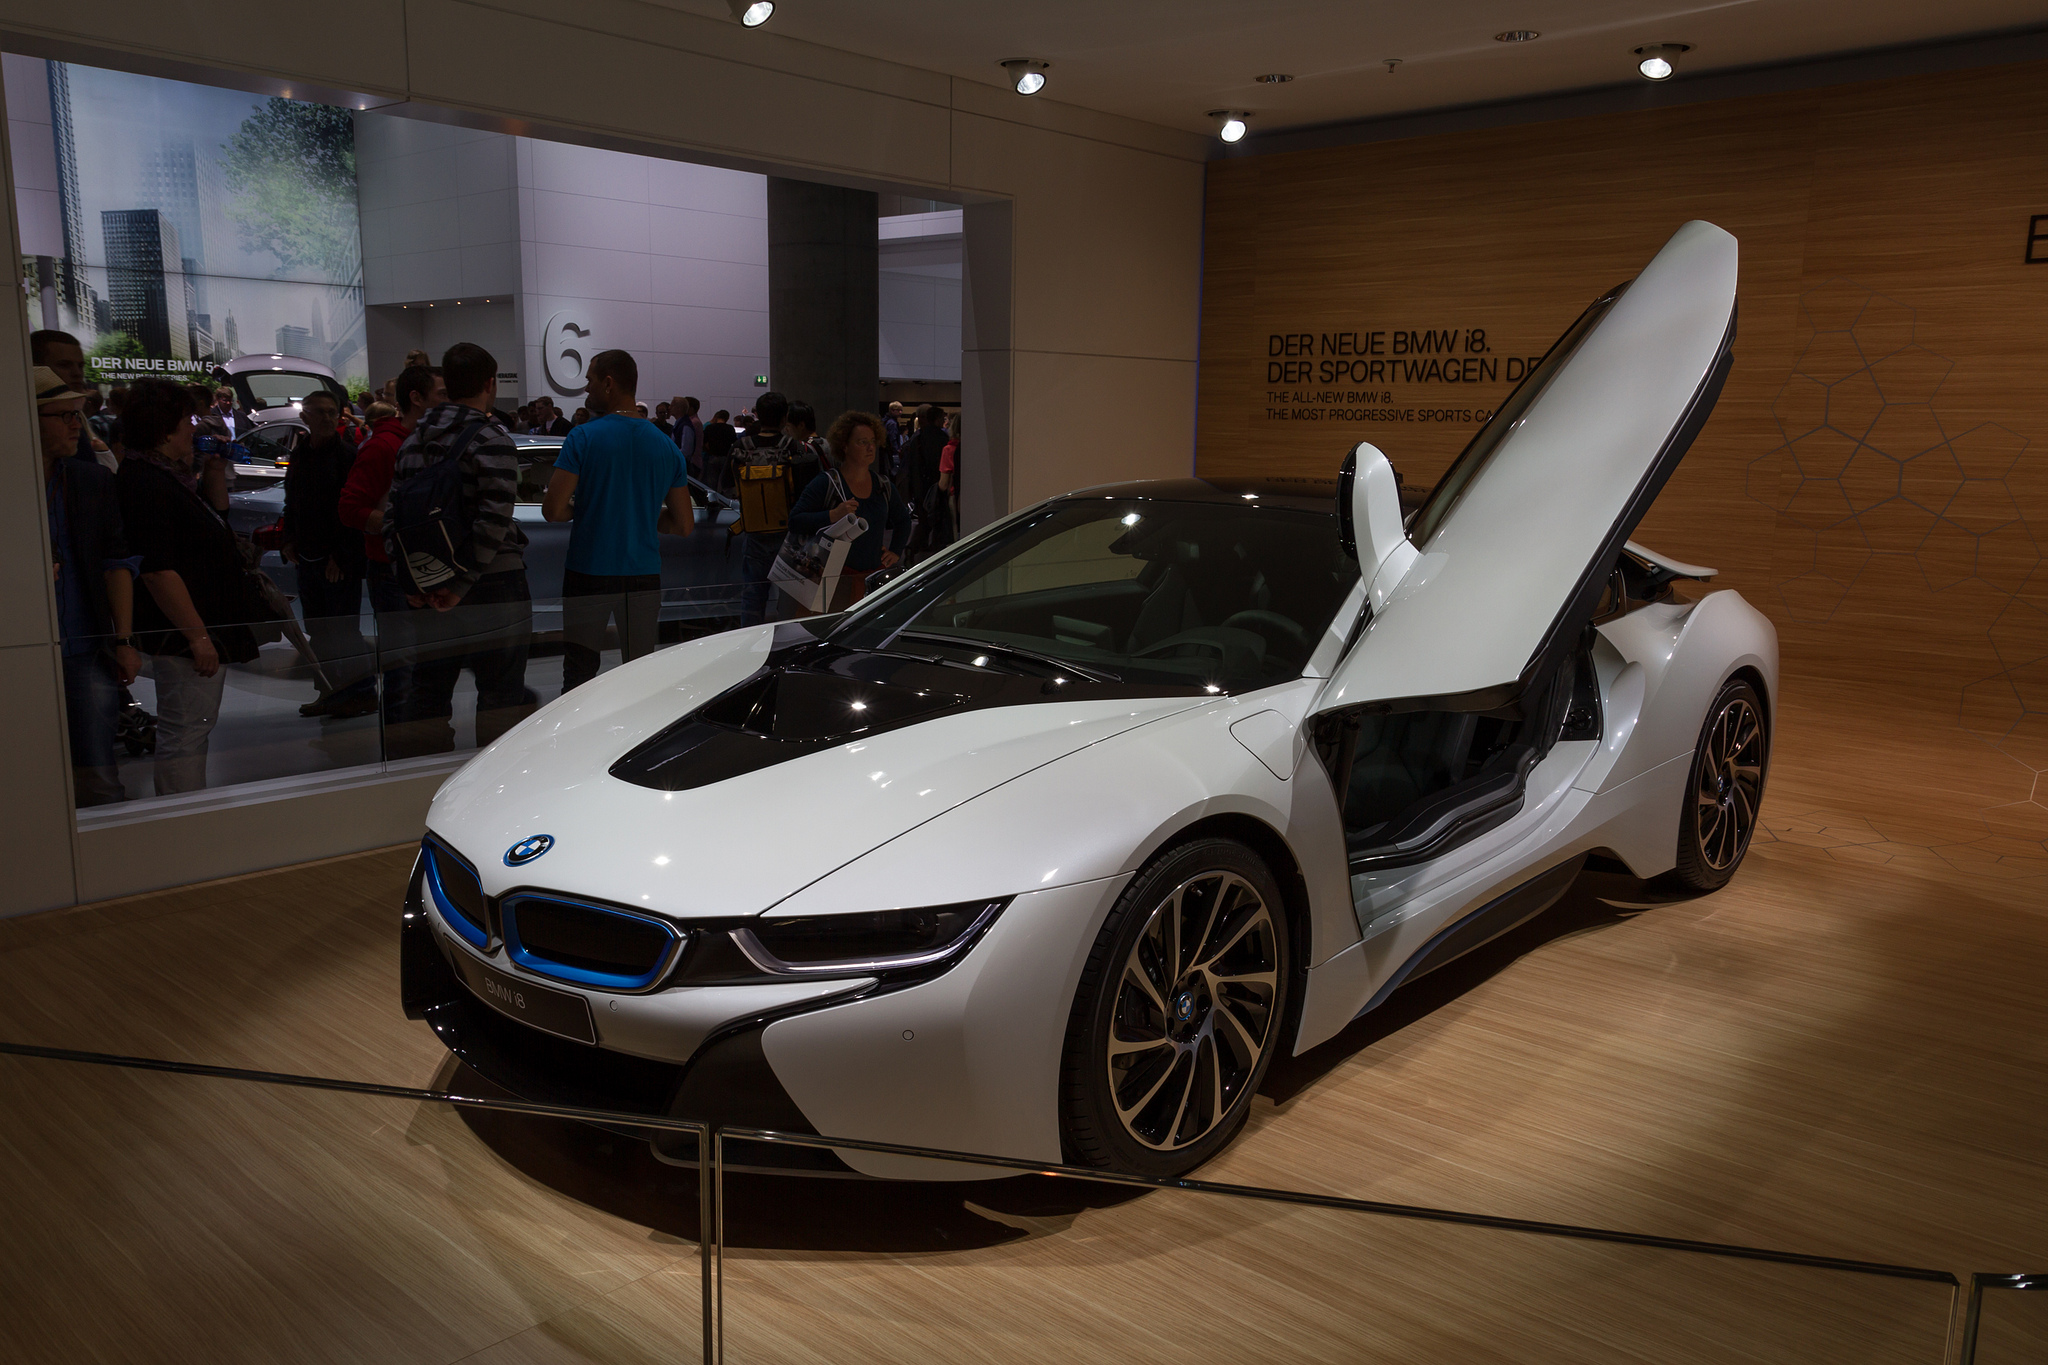 photos de la bmw i8 francfort 2013 blog auto. Black Bedroom Furniture Sets. Home Design Ideas